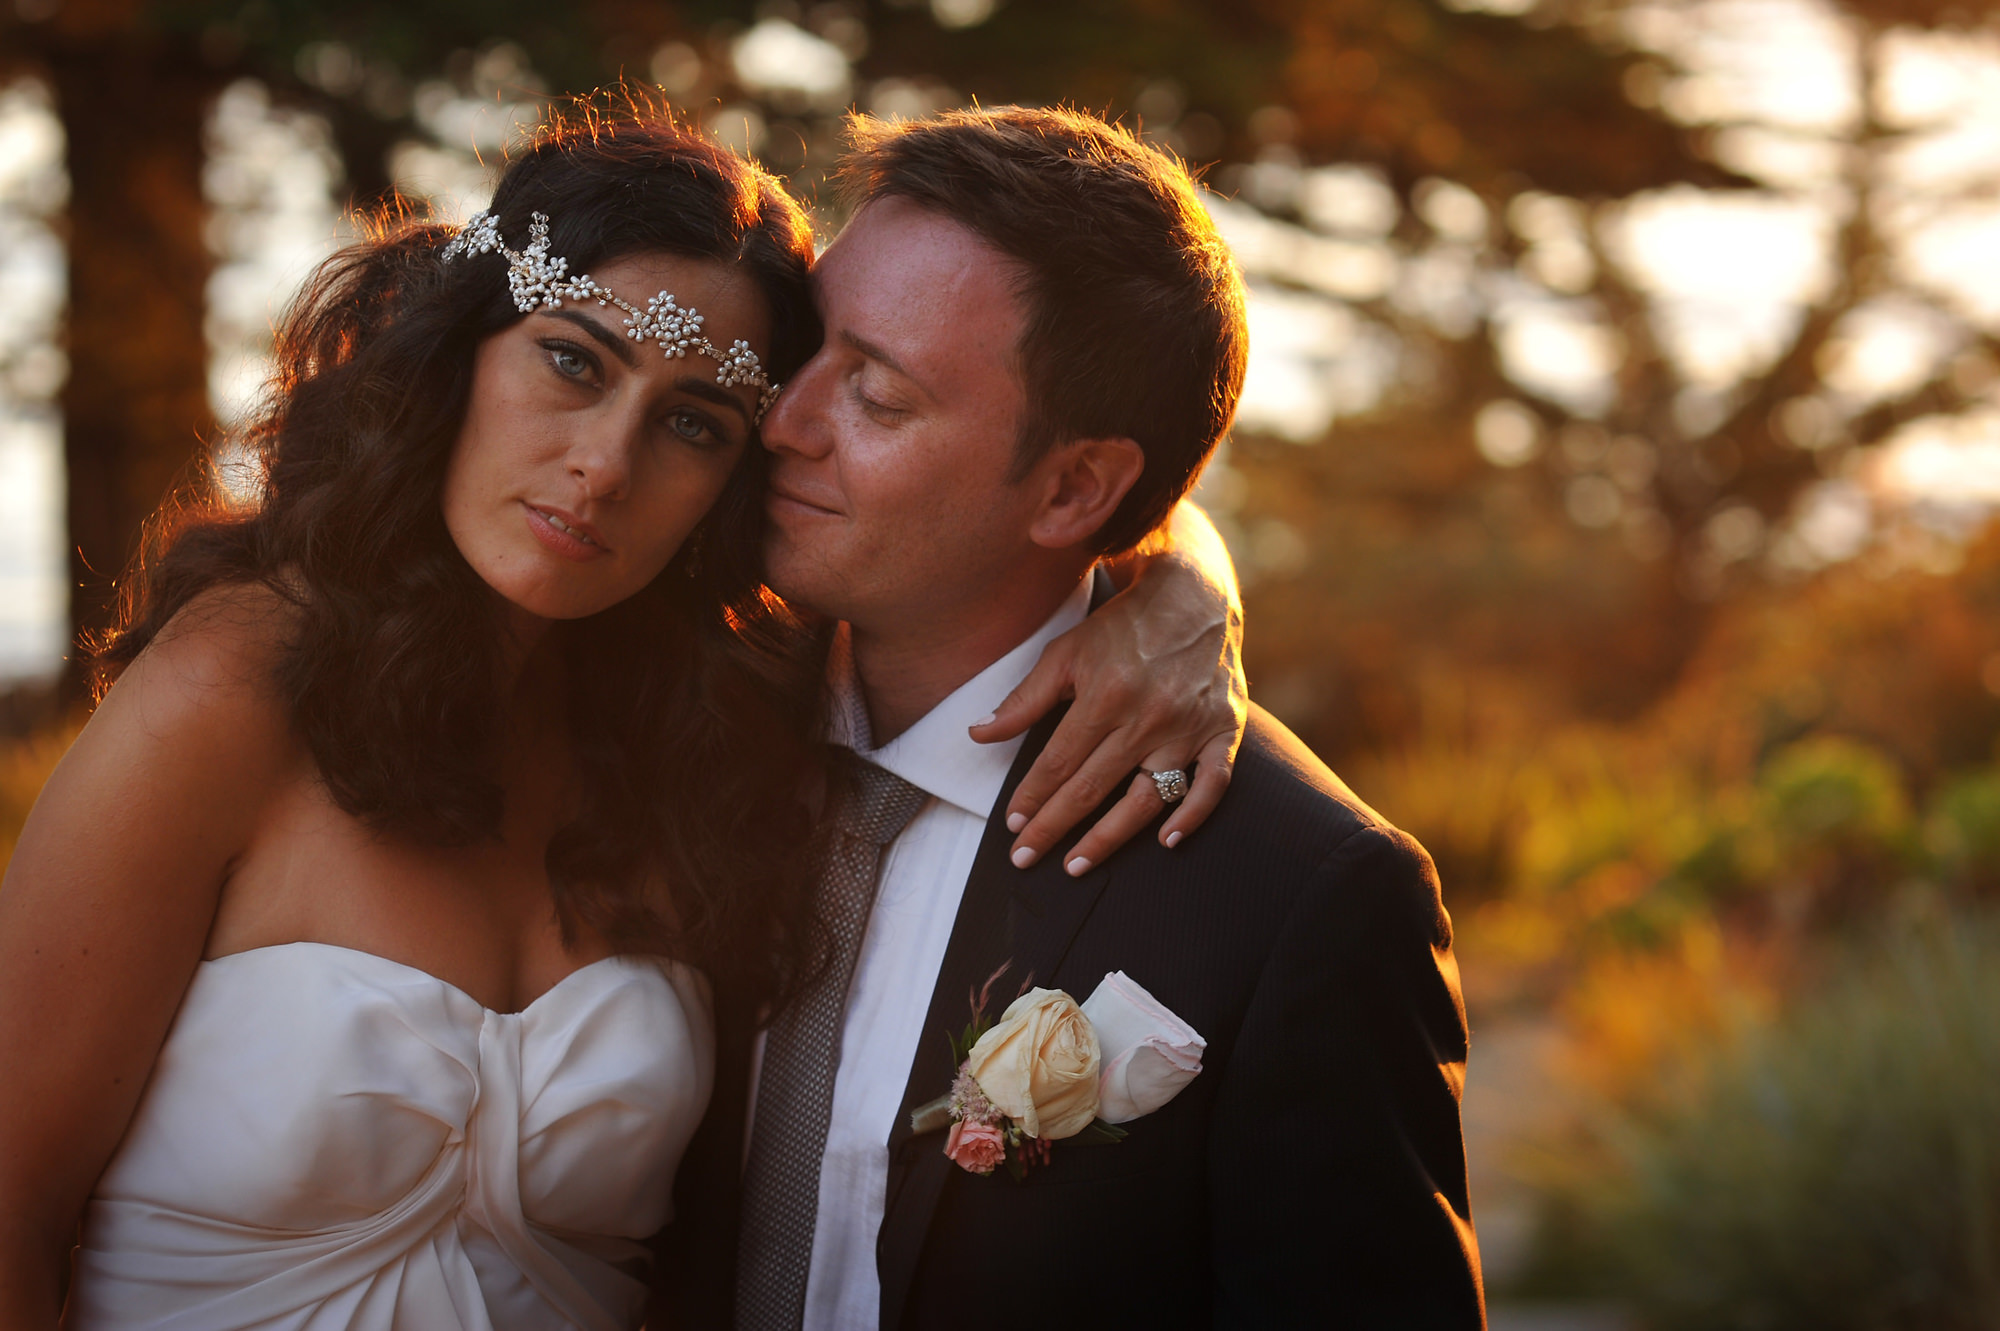 Bride in jeweled crown with happy groom golden hour - photo by Daniel Aguilar